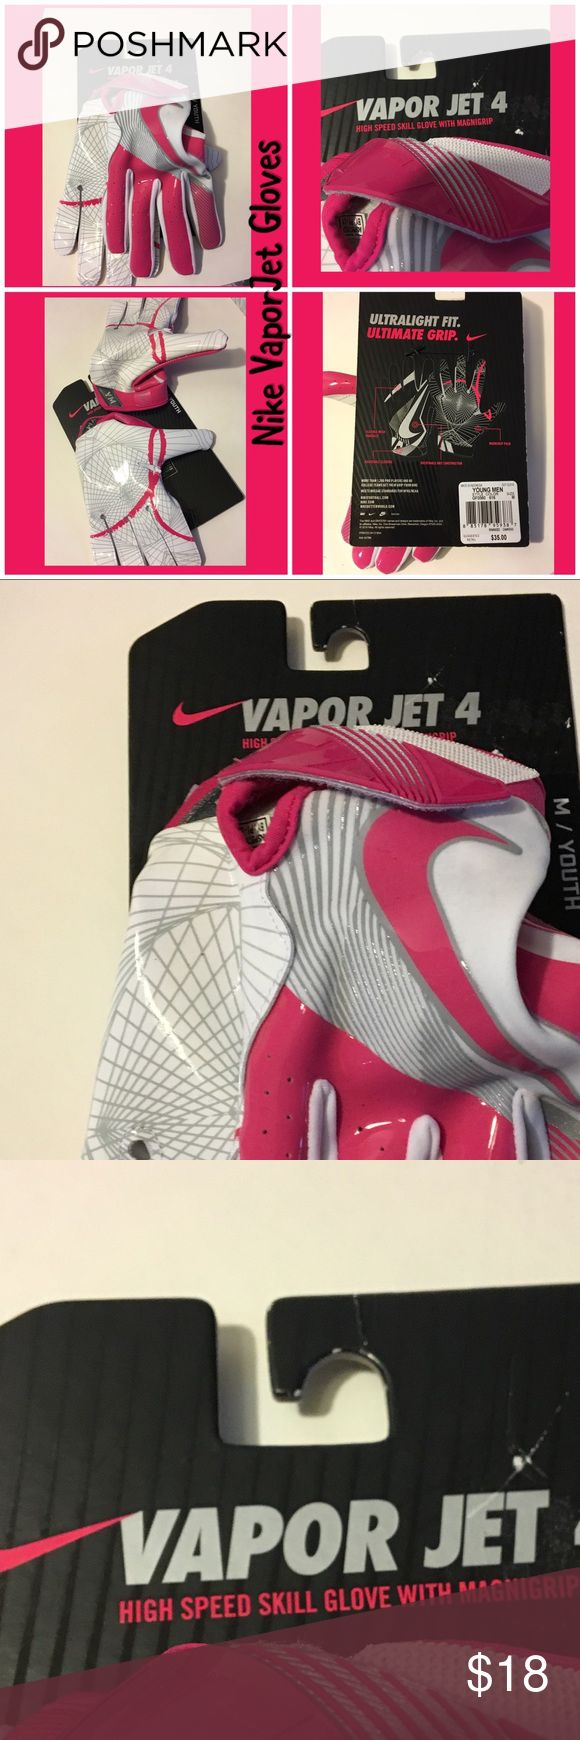 Nike Vapor Jet medium youth pink white skill glove Nike Vapor Jet high speed skill gloves in youth medium. Ultralight fit, ultimate grip. Flexible mesh knuckles, magnigrip palm, breathable knot construction, adjustable closure, Nike football gloves. MSRP $35. Come from a smoke-free home. Please see my other items. Bundle & save! Nike Other